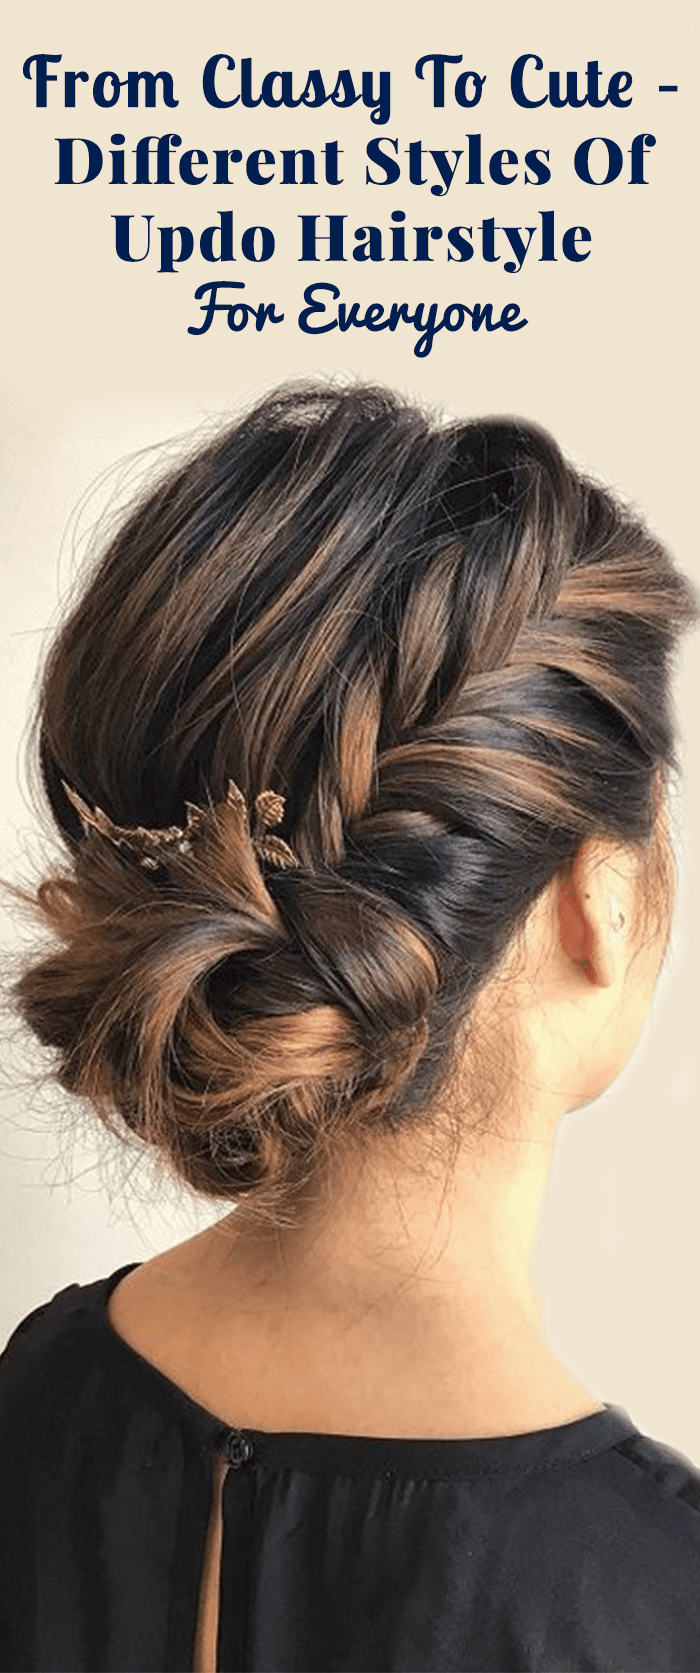 From Classy To Cute – Different Styles Of Updo Hairstyle For Everyone